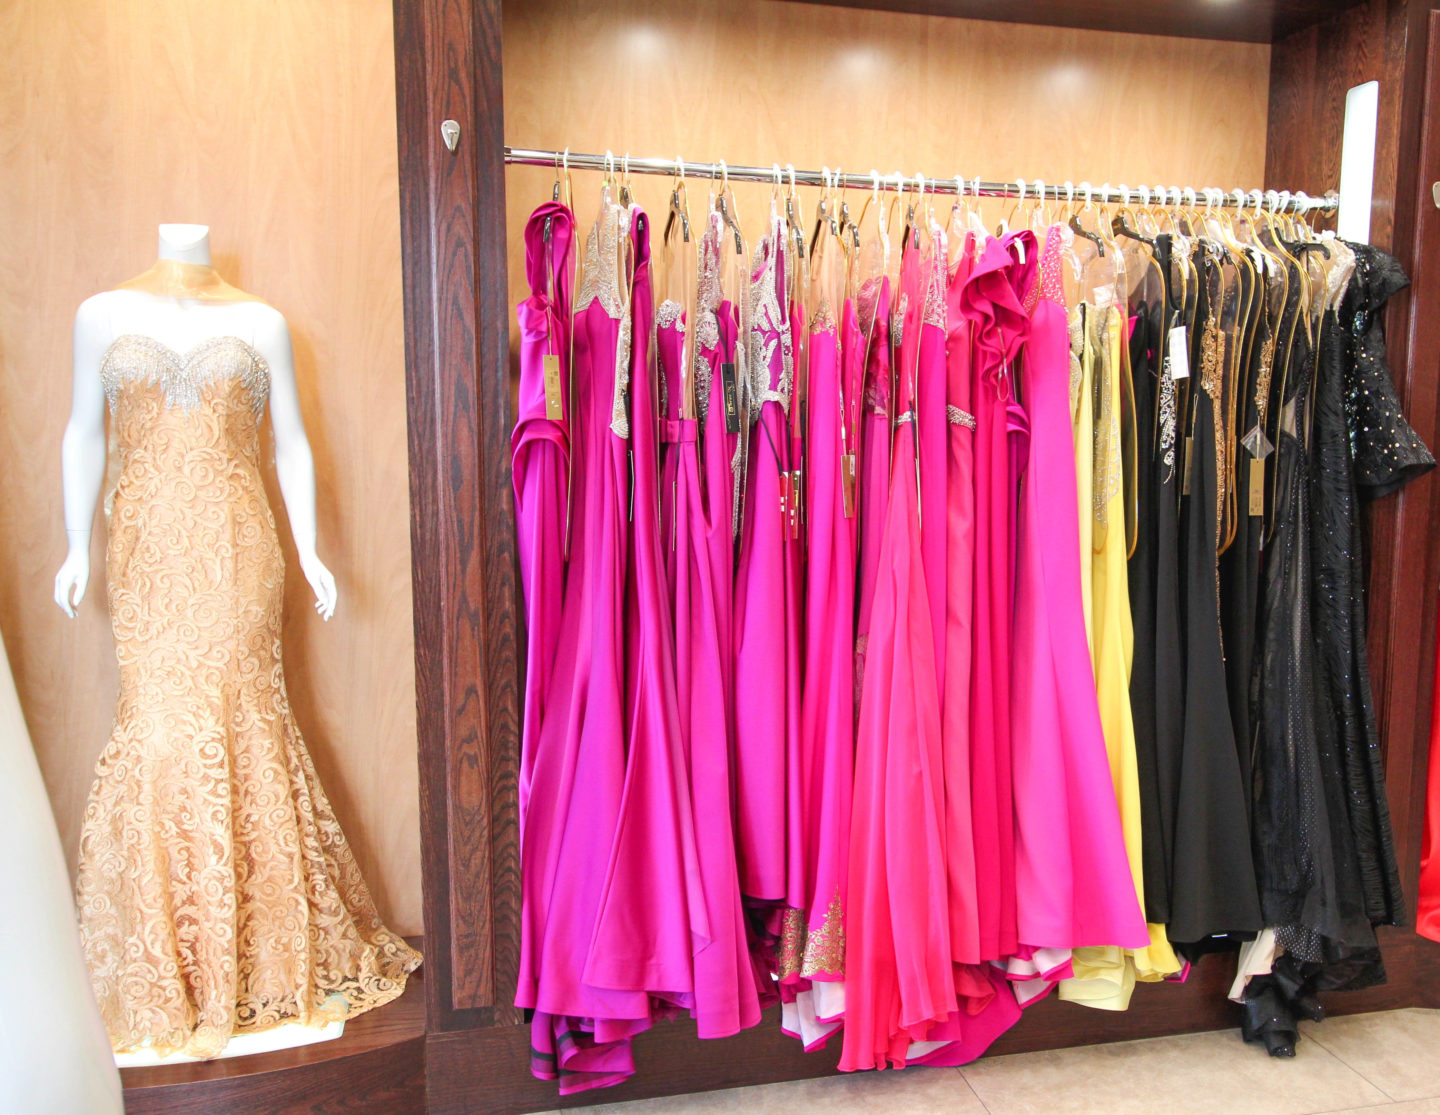 Formal Dress Shopping at LA Fashion District - Chelsea de Castro